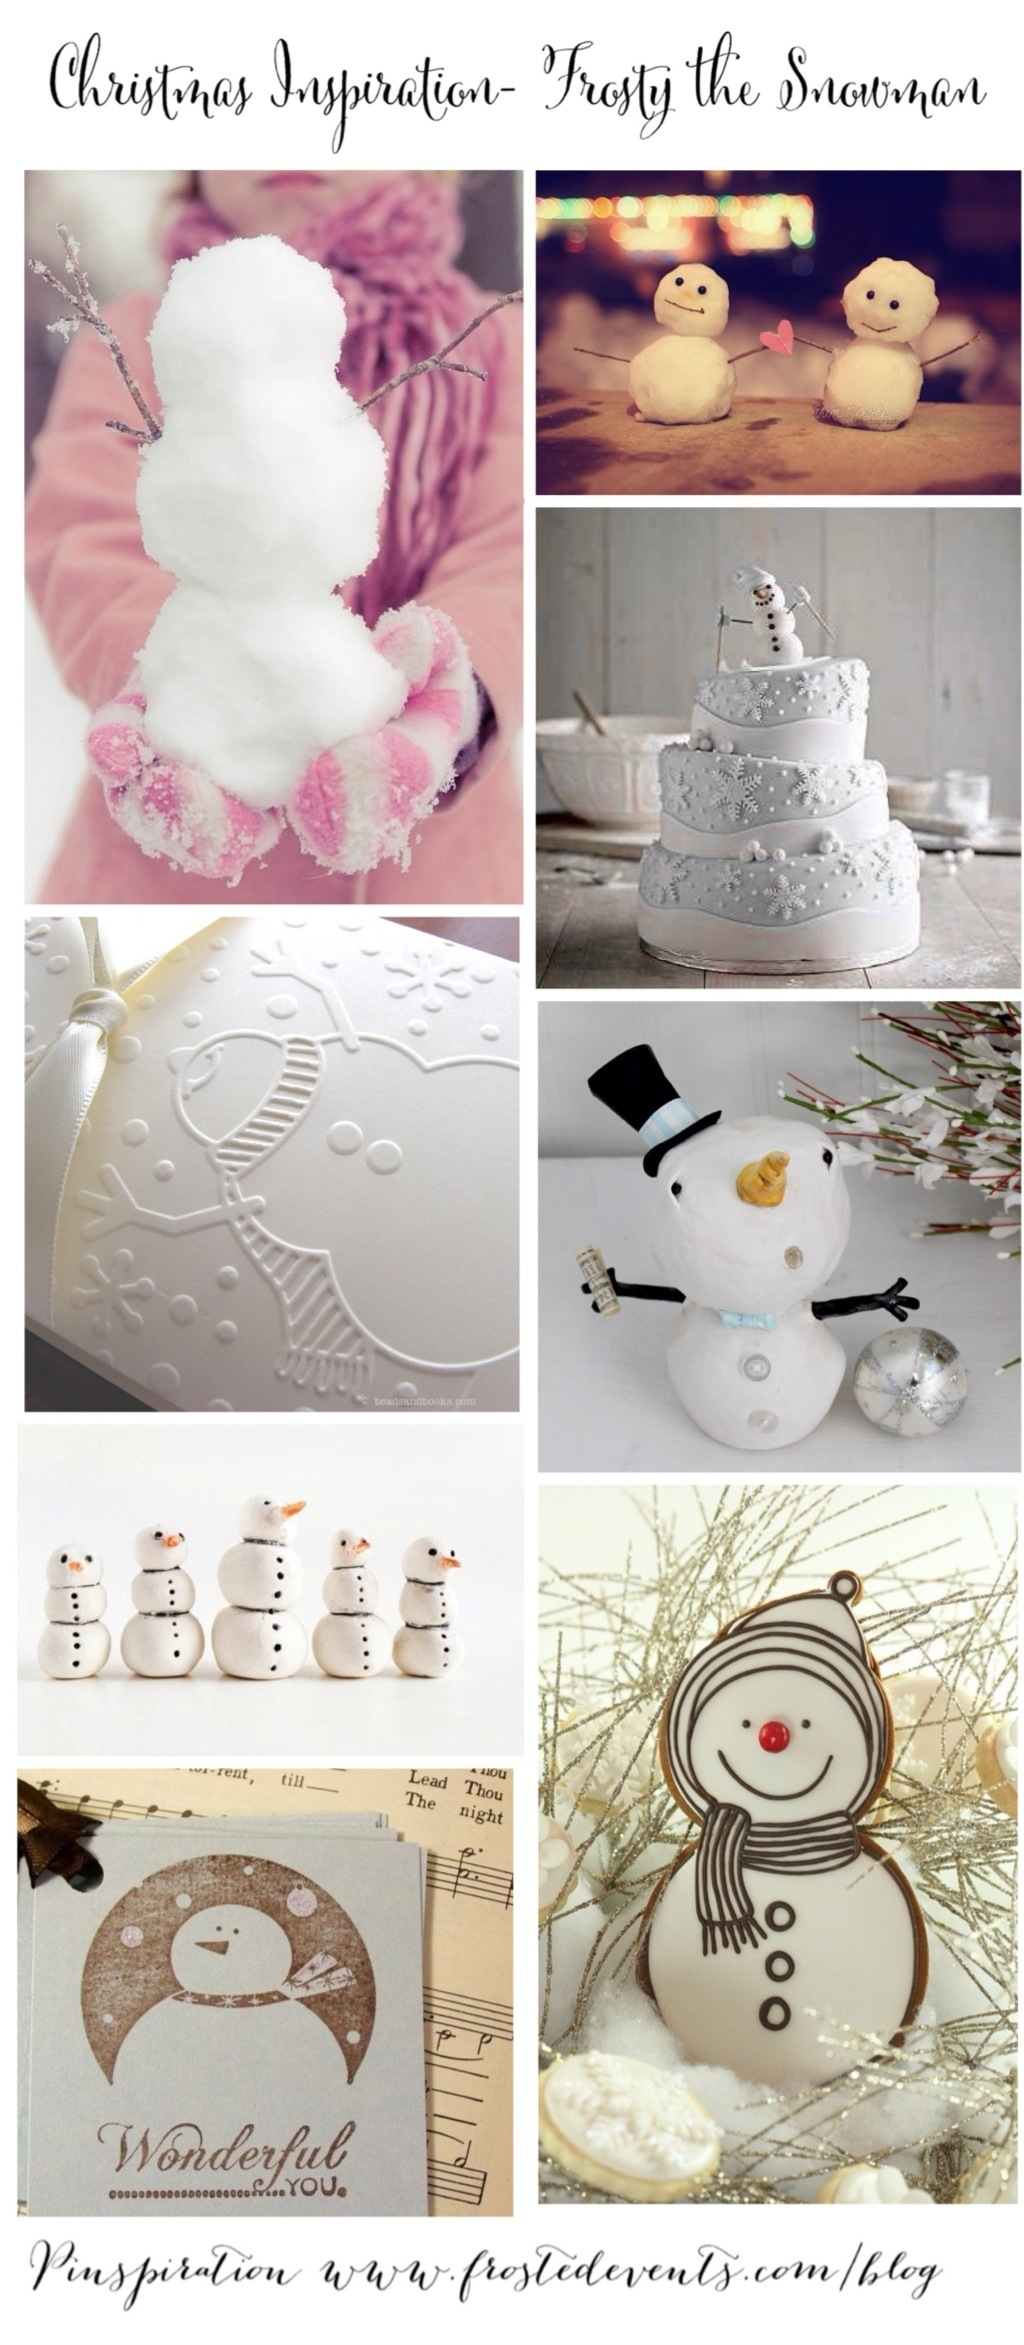 Christmas Inspiration- Frosty the Snowman www.frostedevents.com Holiday Ideas